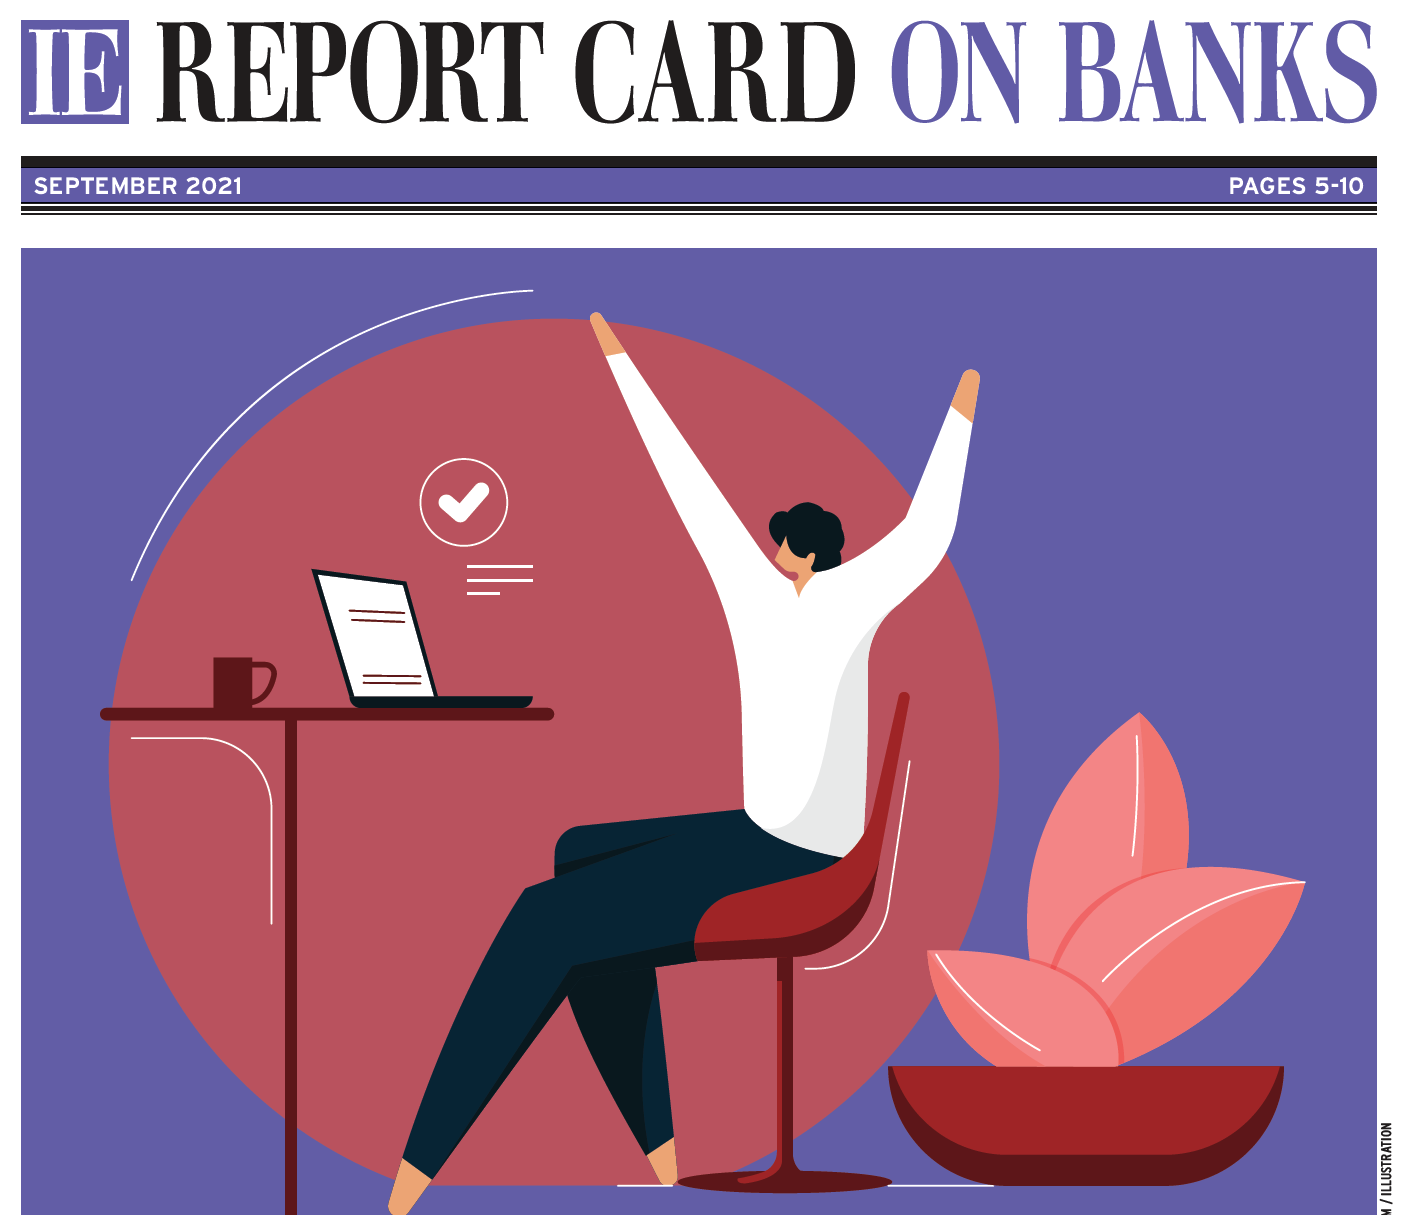 IE Report Card on Banks